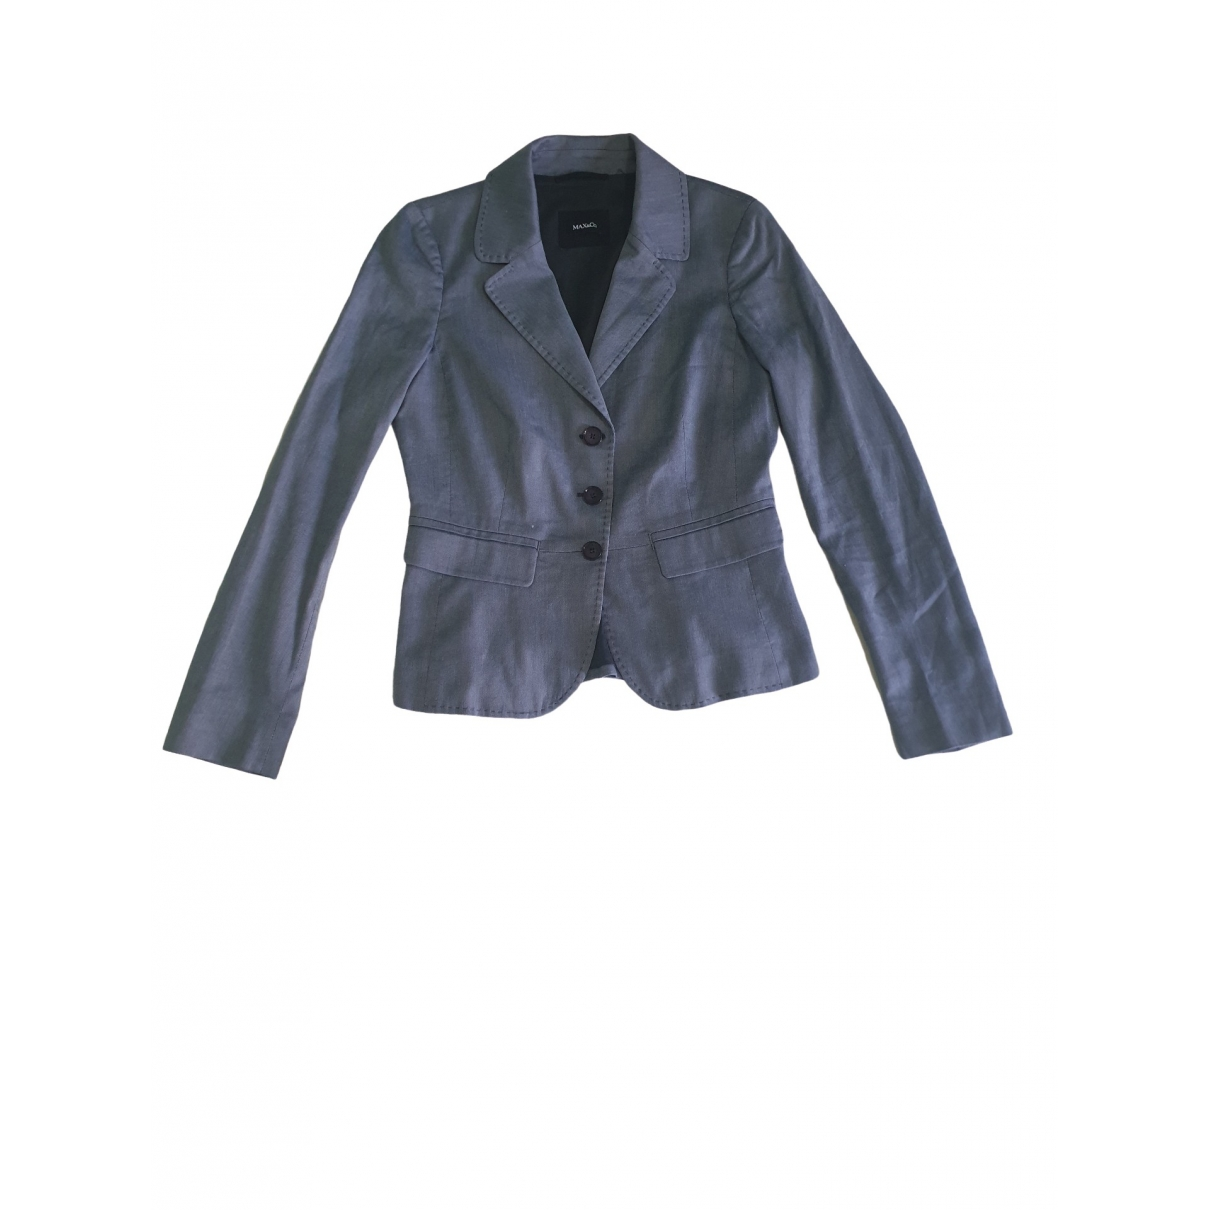 Max & Co \N Cotton jacket for Women 42 FR